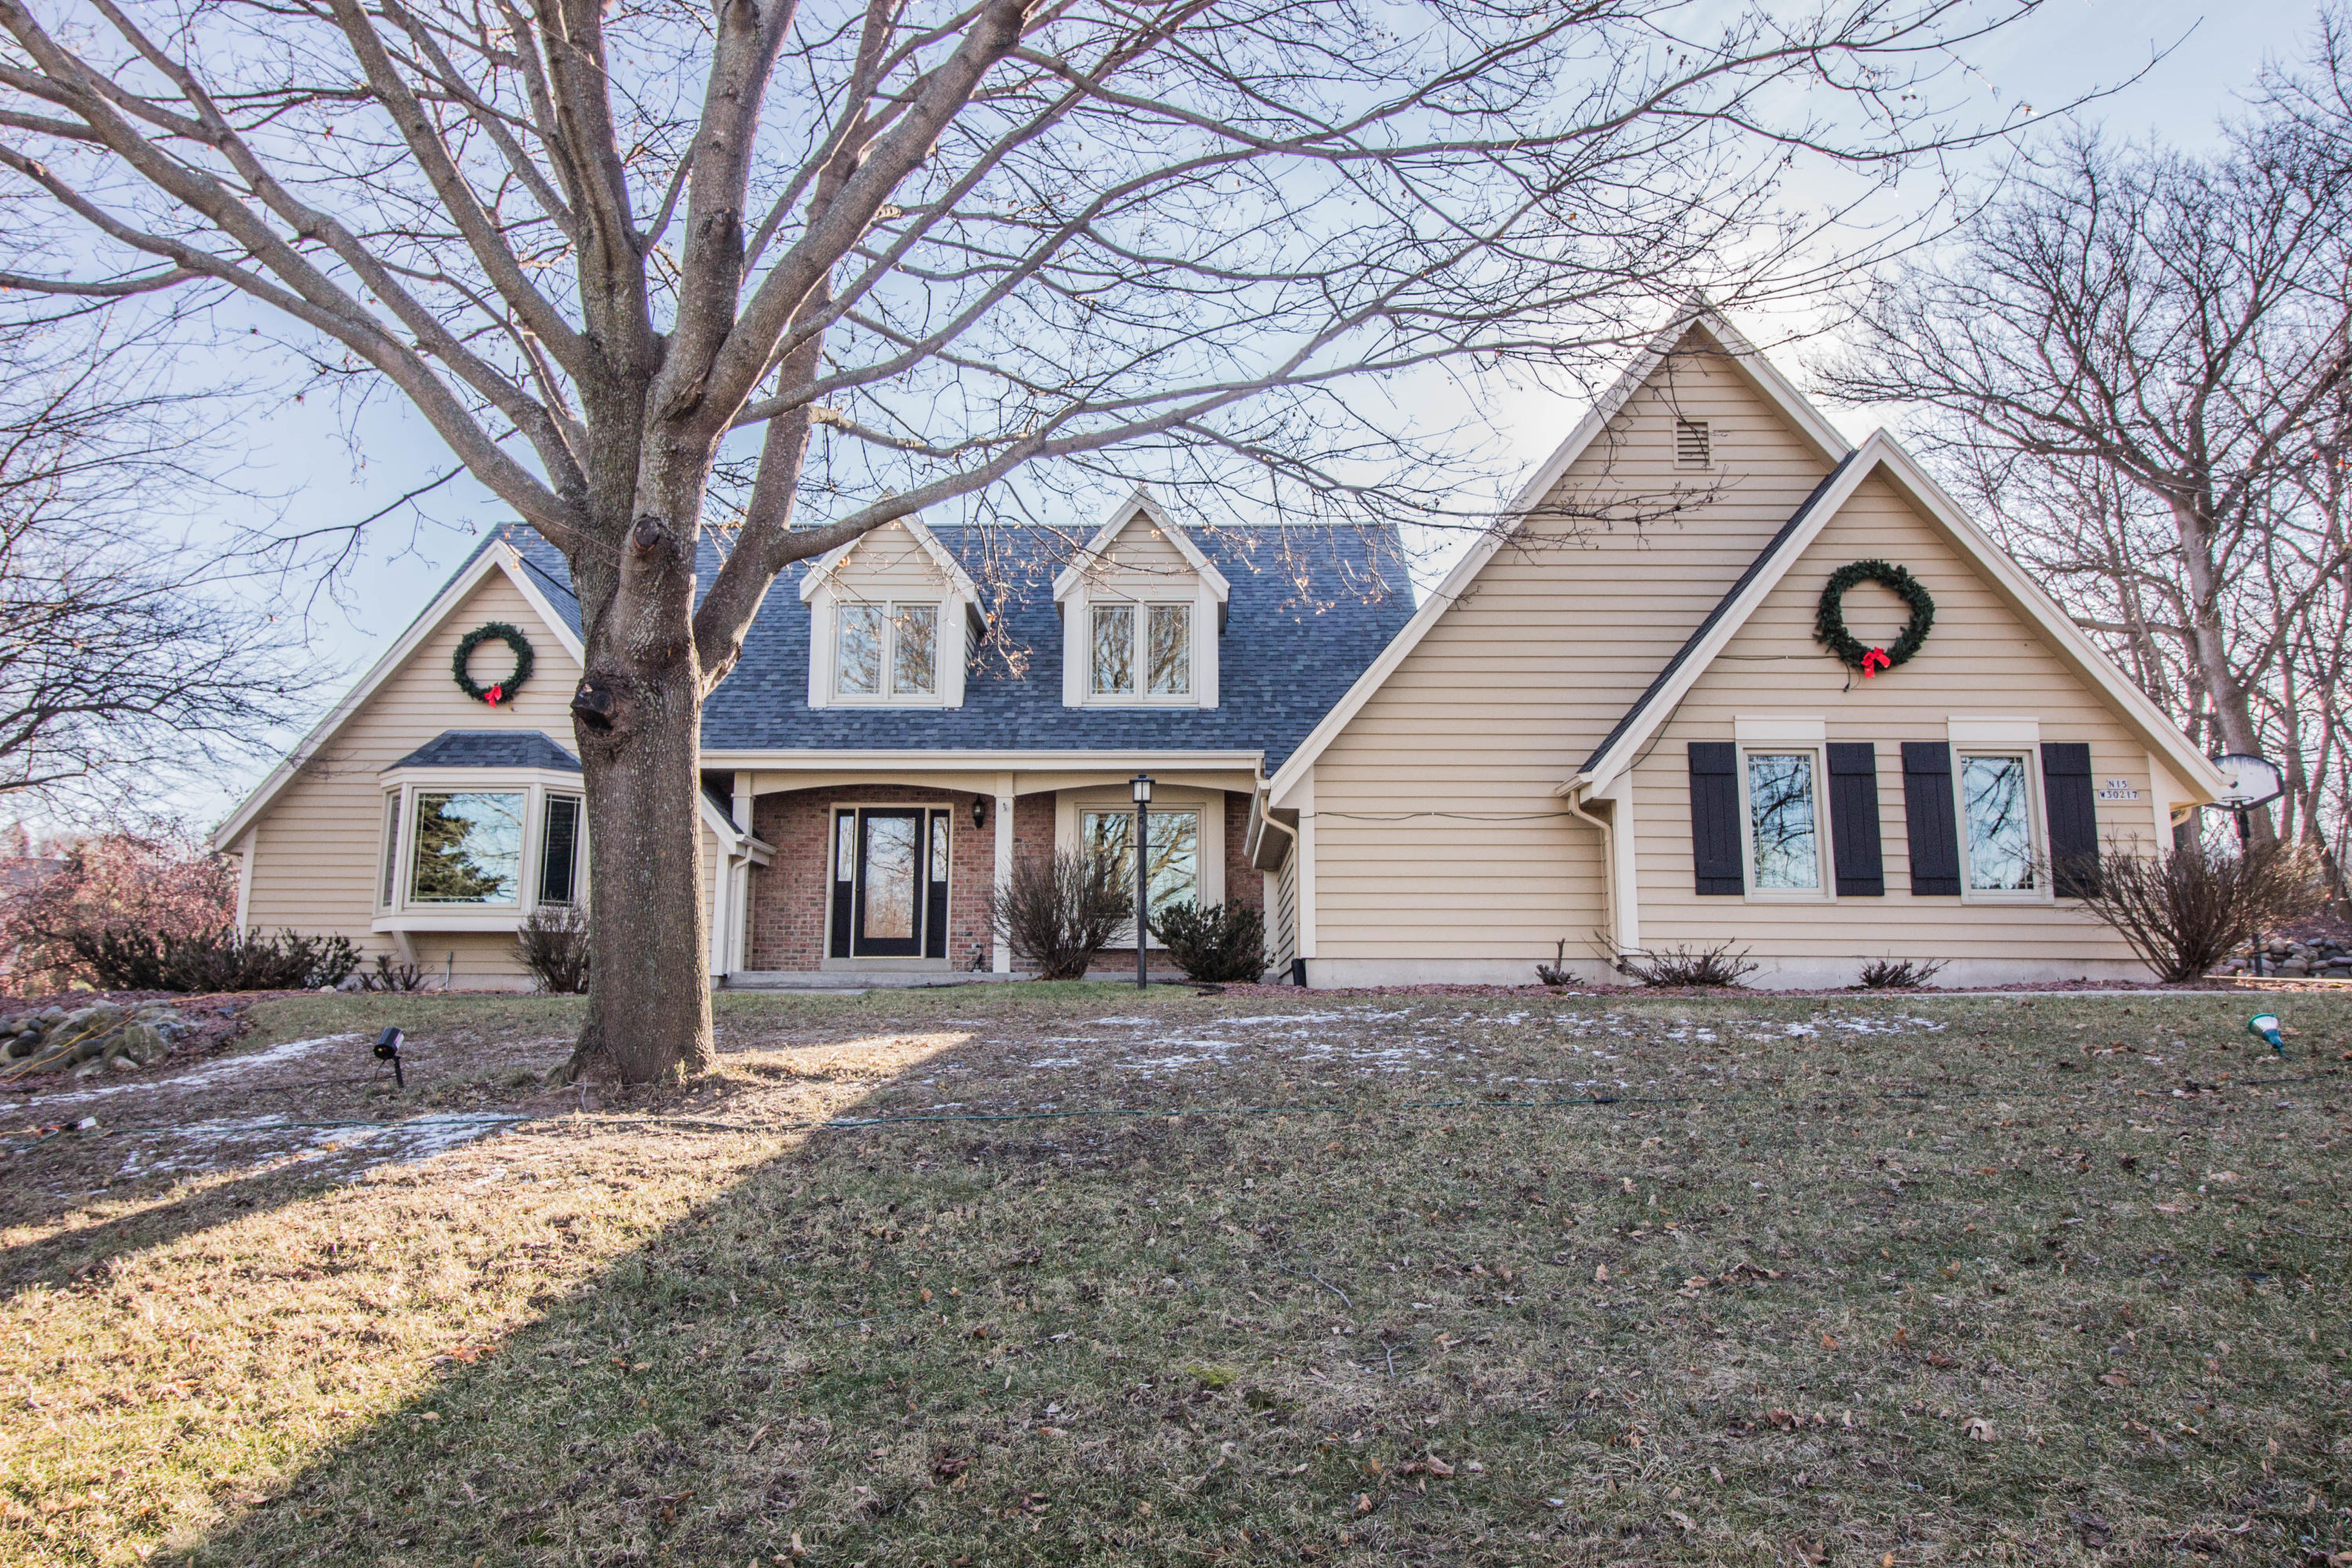 N15W30217 Timberbrook Rd, Delafield, Wisconsin 53072, 4 Bedrooms Bedrooms, 10 Rooms Rooms,4 BathroomsBathrooms,Single-Family,For Sale,Timberbrook Rd,1621595